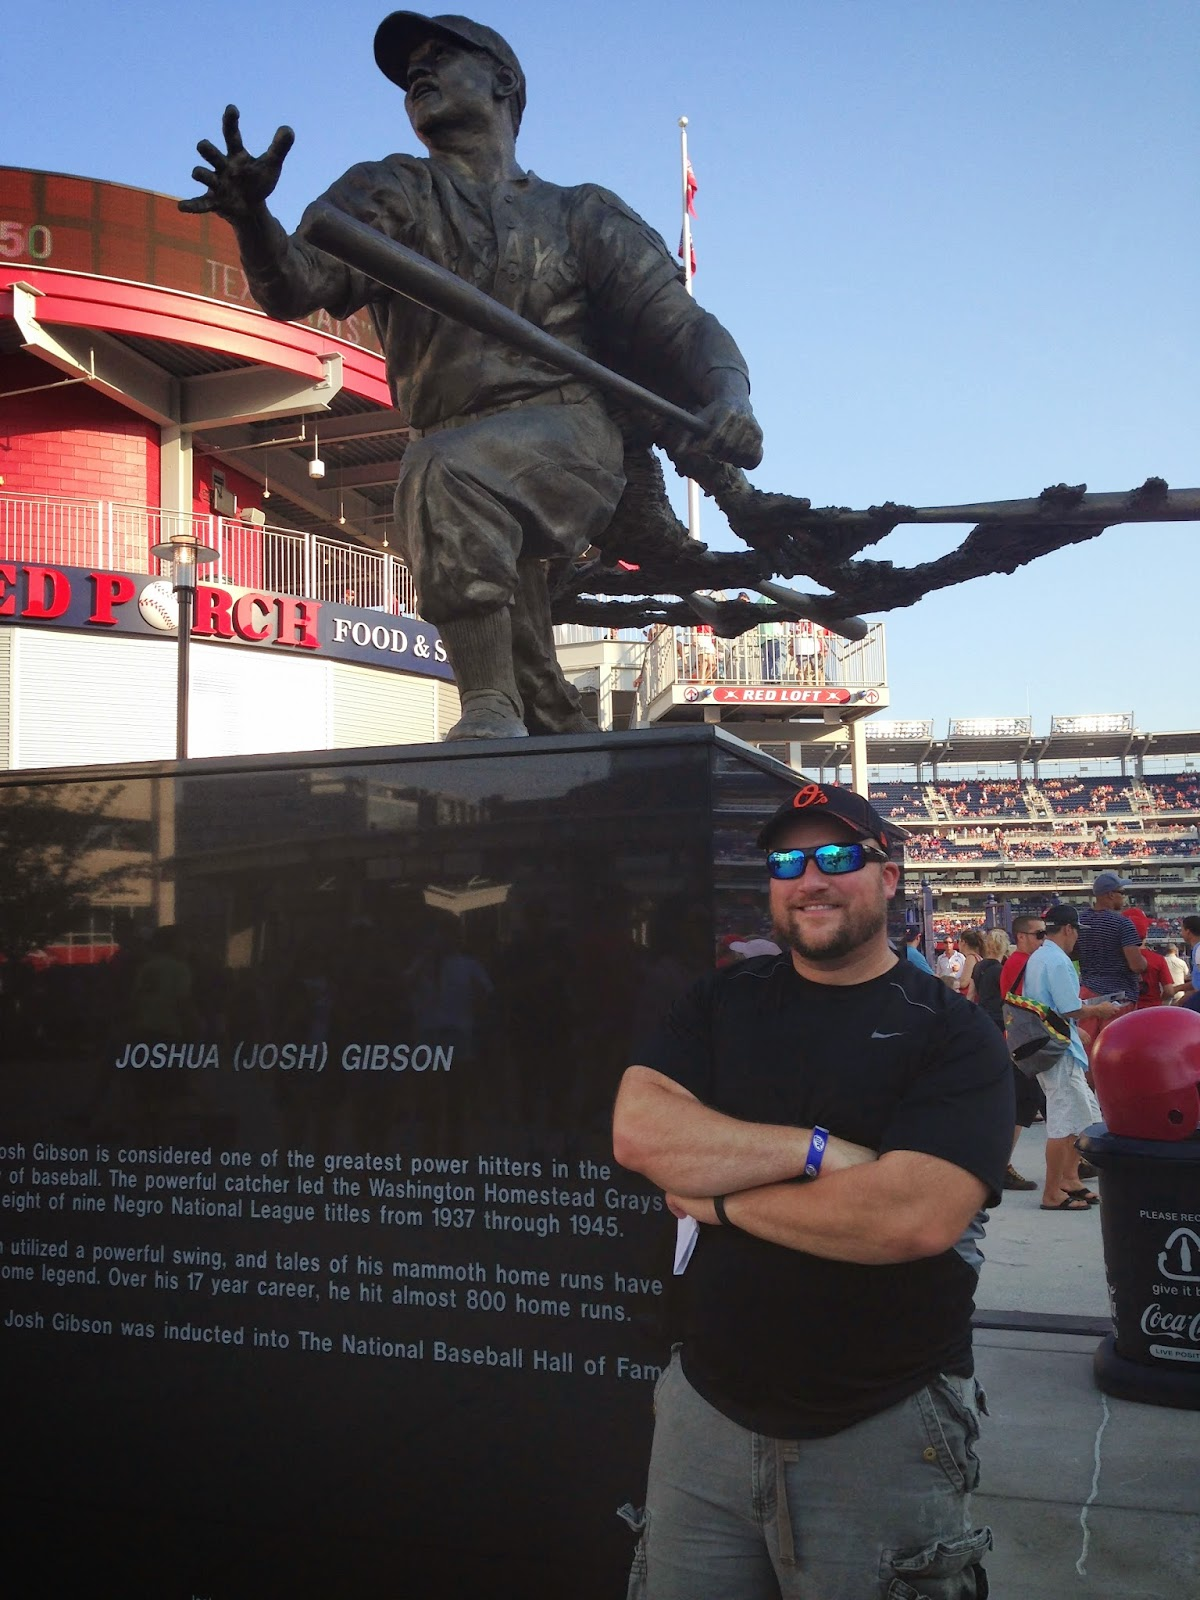 epiphany in baltimore  and me this summer in front of the josh gibson statue at washington nationals park